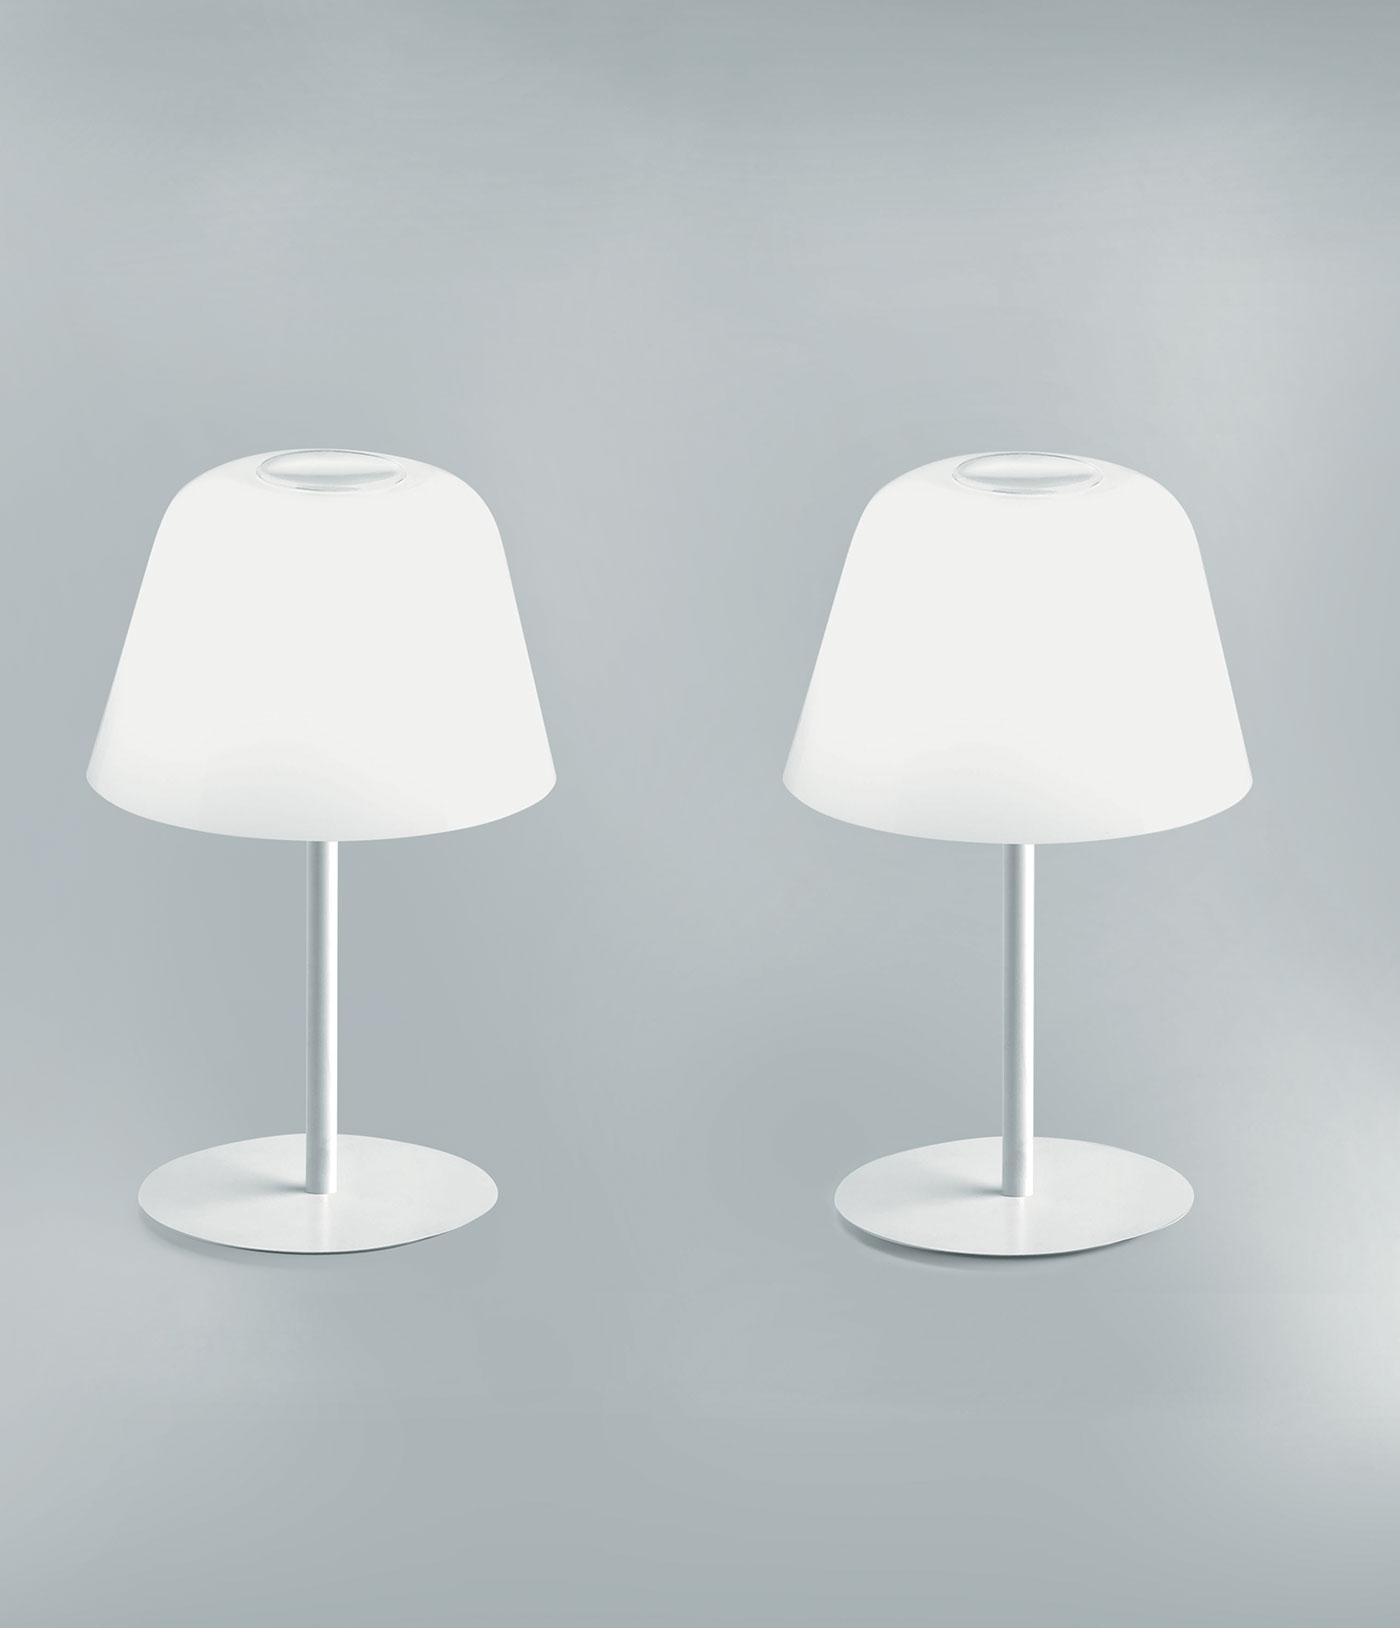 Blown glass table lamps - Table Lamp Murano Glass White Design Carrara Marble Dimmer Post Made In Italy Light Online